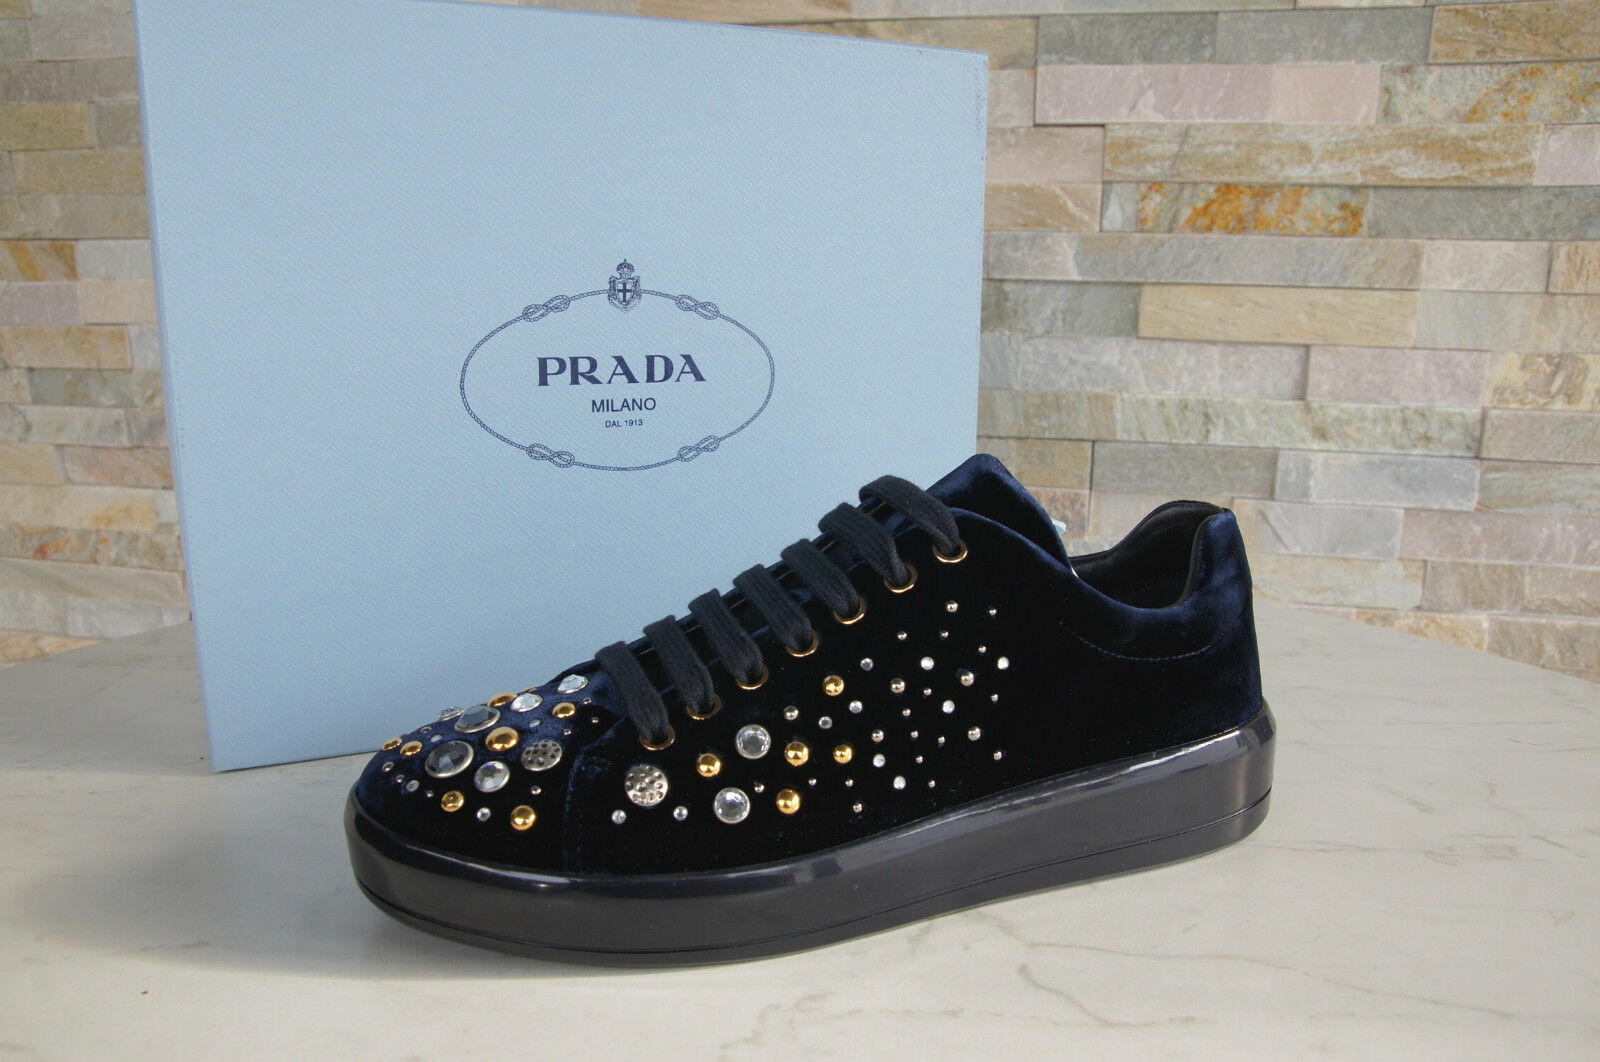 Prada 40 Sneakers Lace up 1E971H shoes shoes shoes Velvet Studs bluee New Formerly Rrp 4f1755